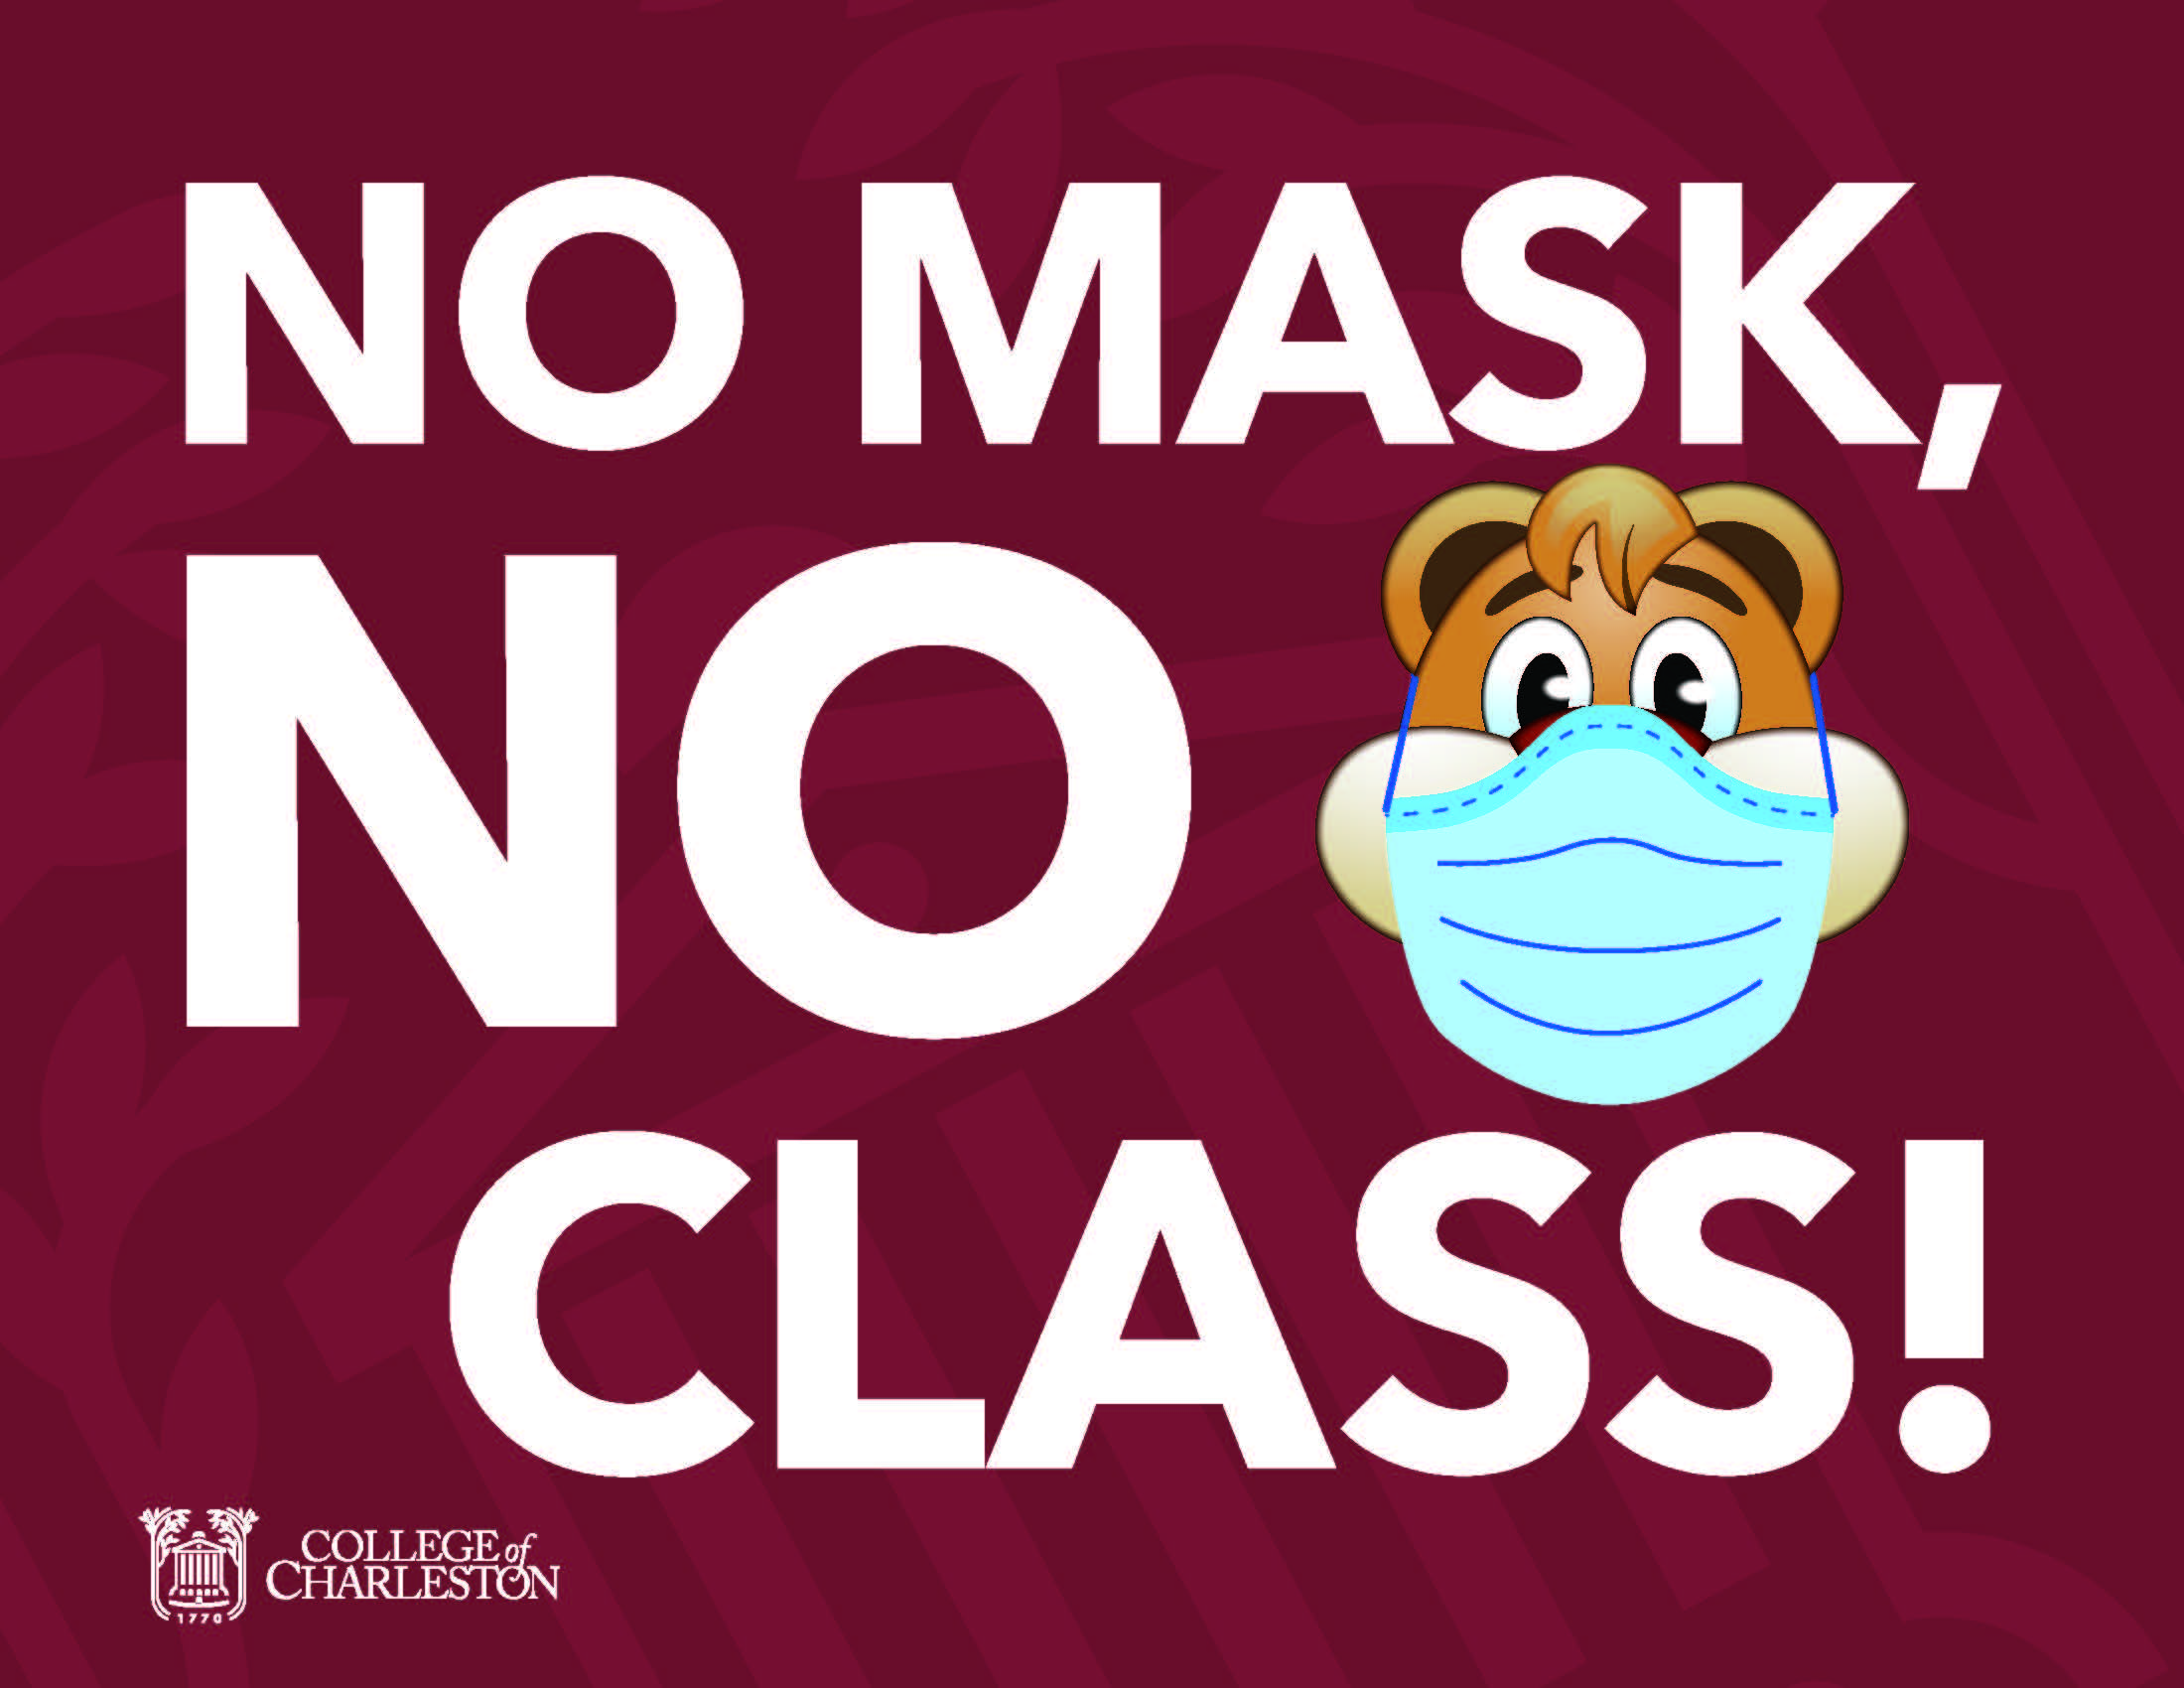 image of signage for no mask no class